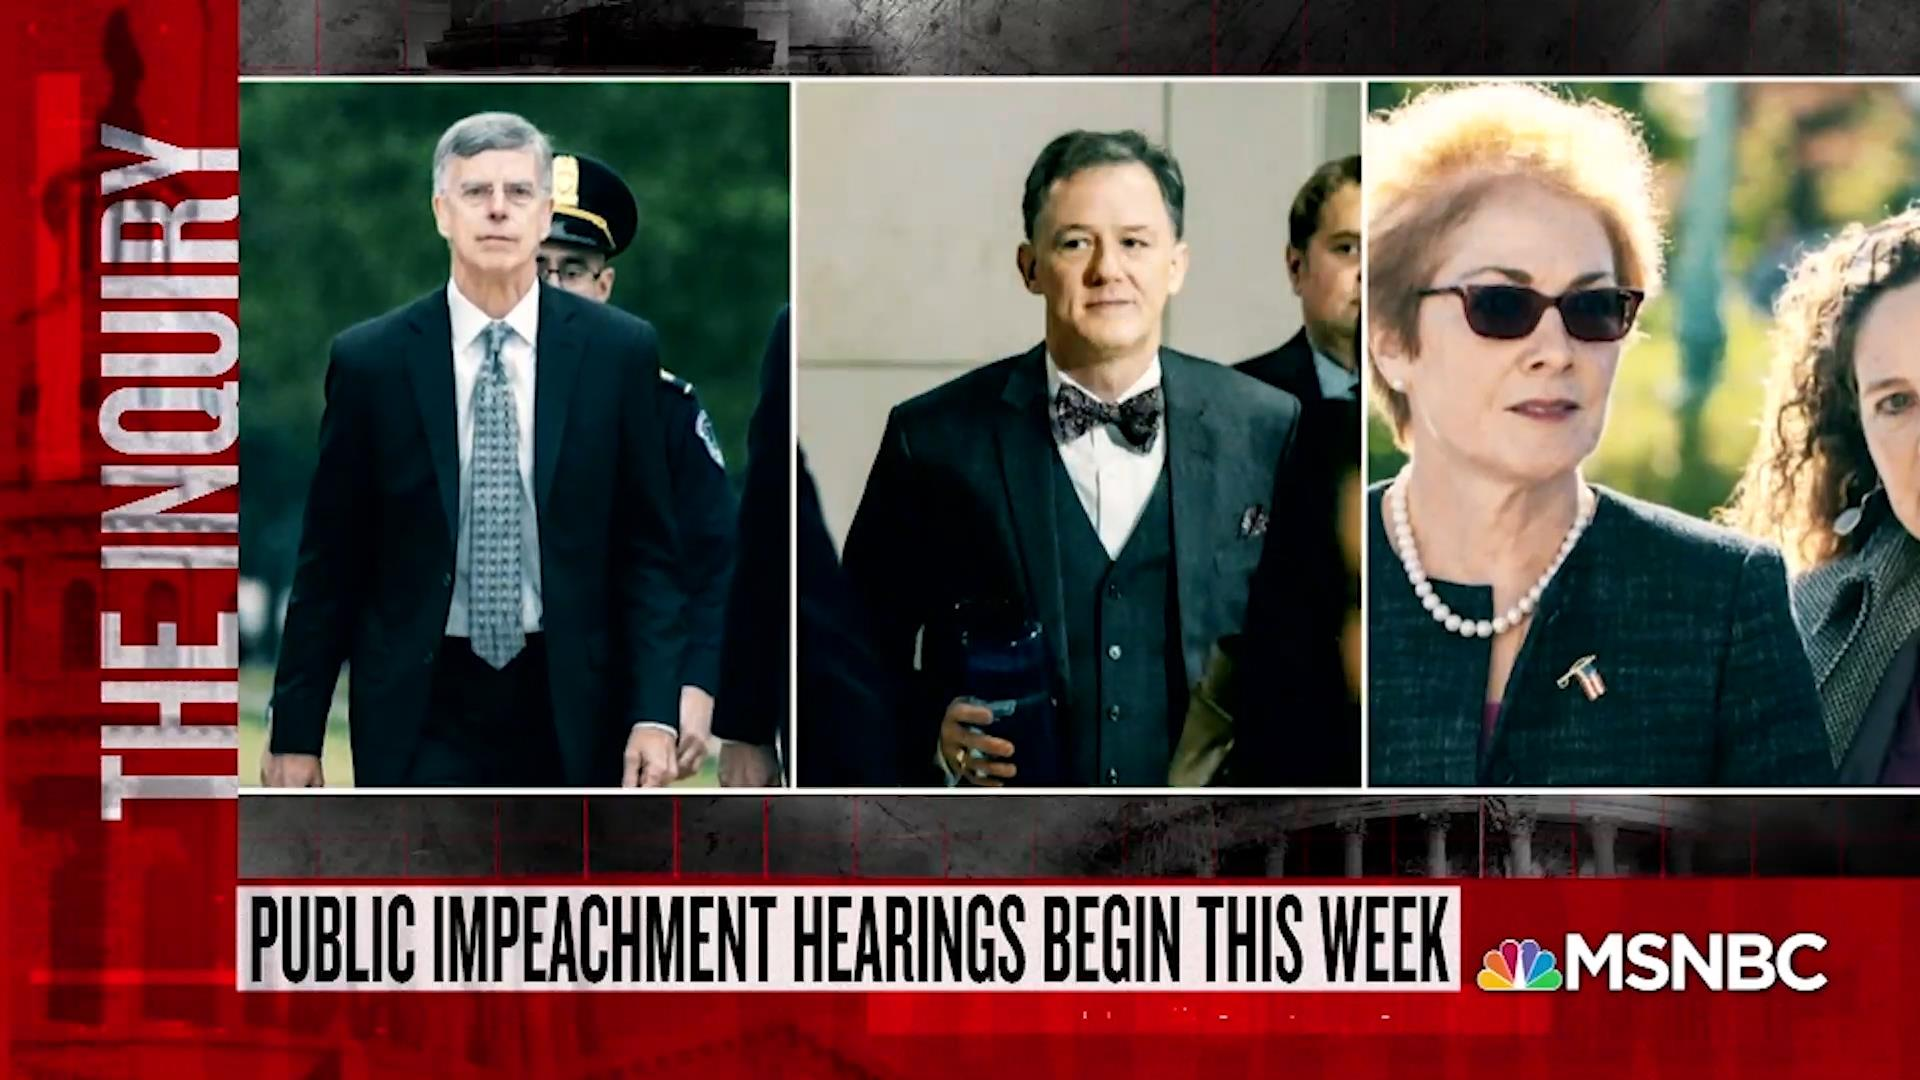 Katy Tur breaks down the latest developments in the impeachment inquiry against President Trump